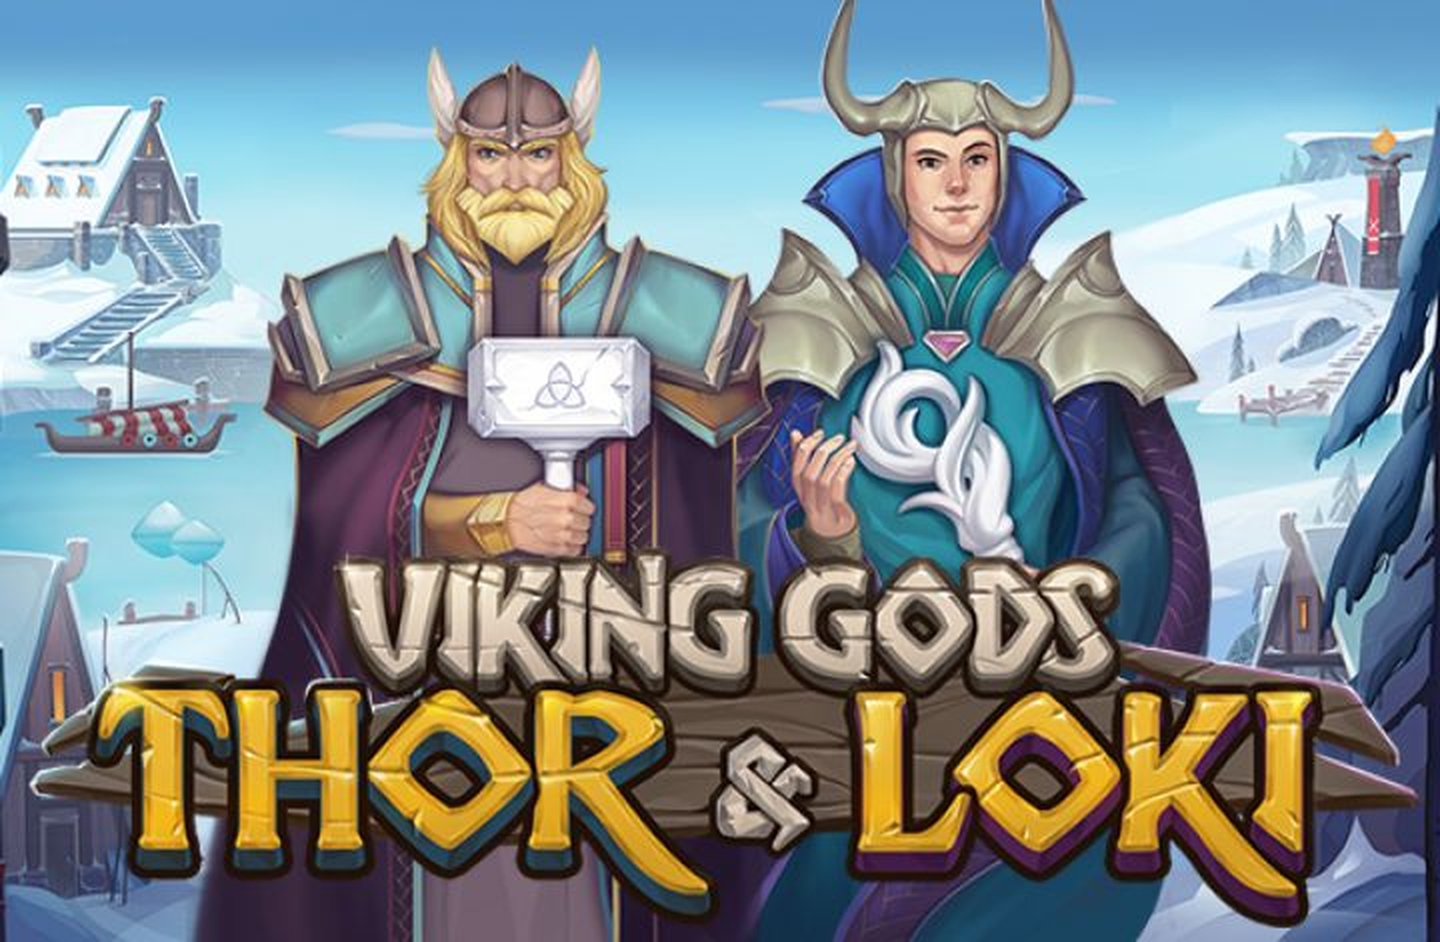 The Viking Gods Thor and Loki Online Slot Demo Game by Playson